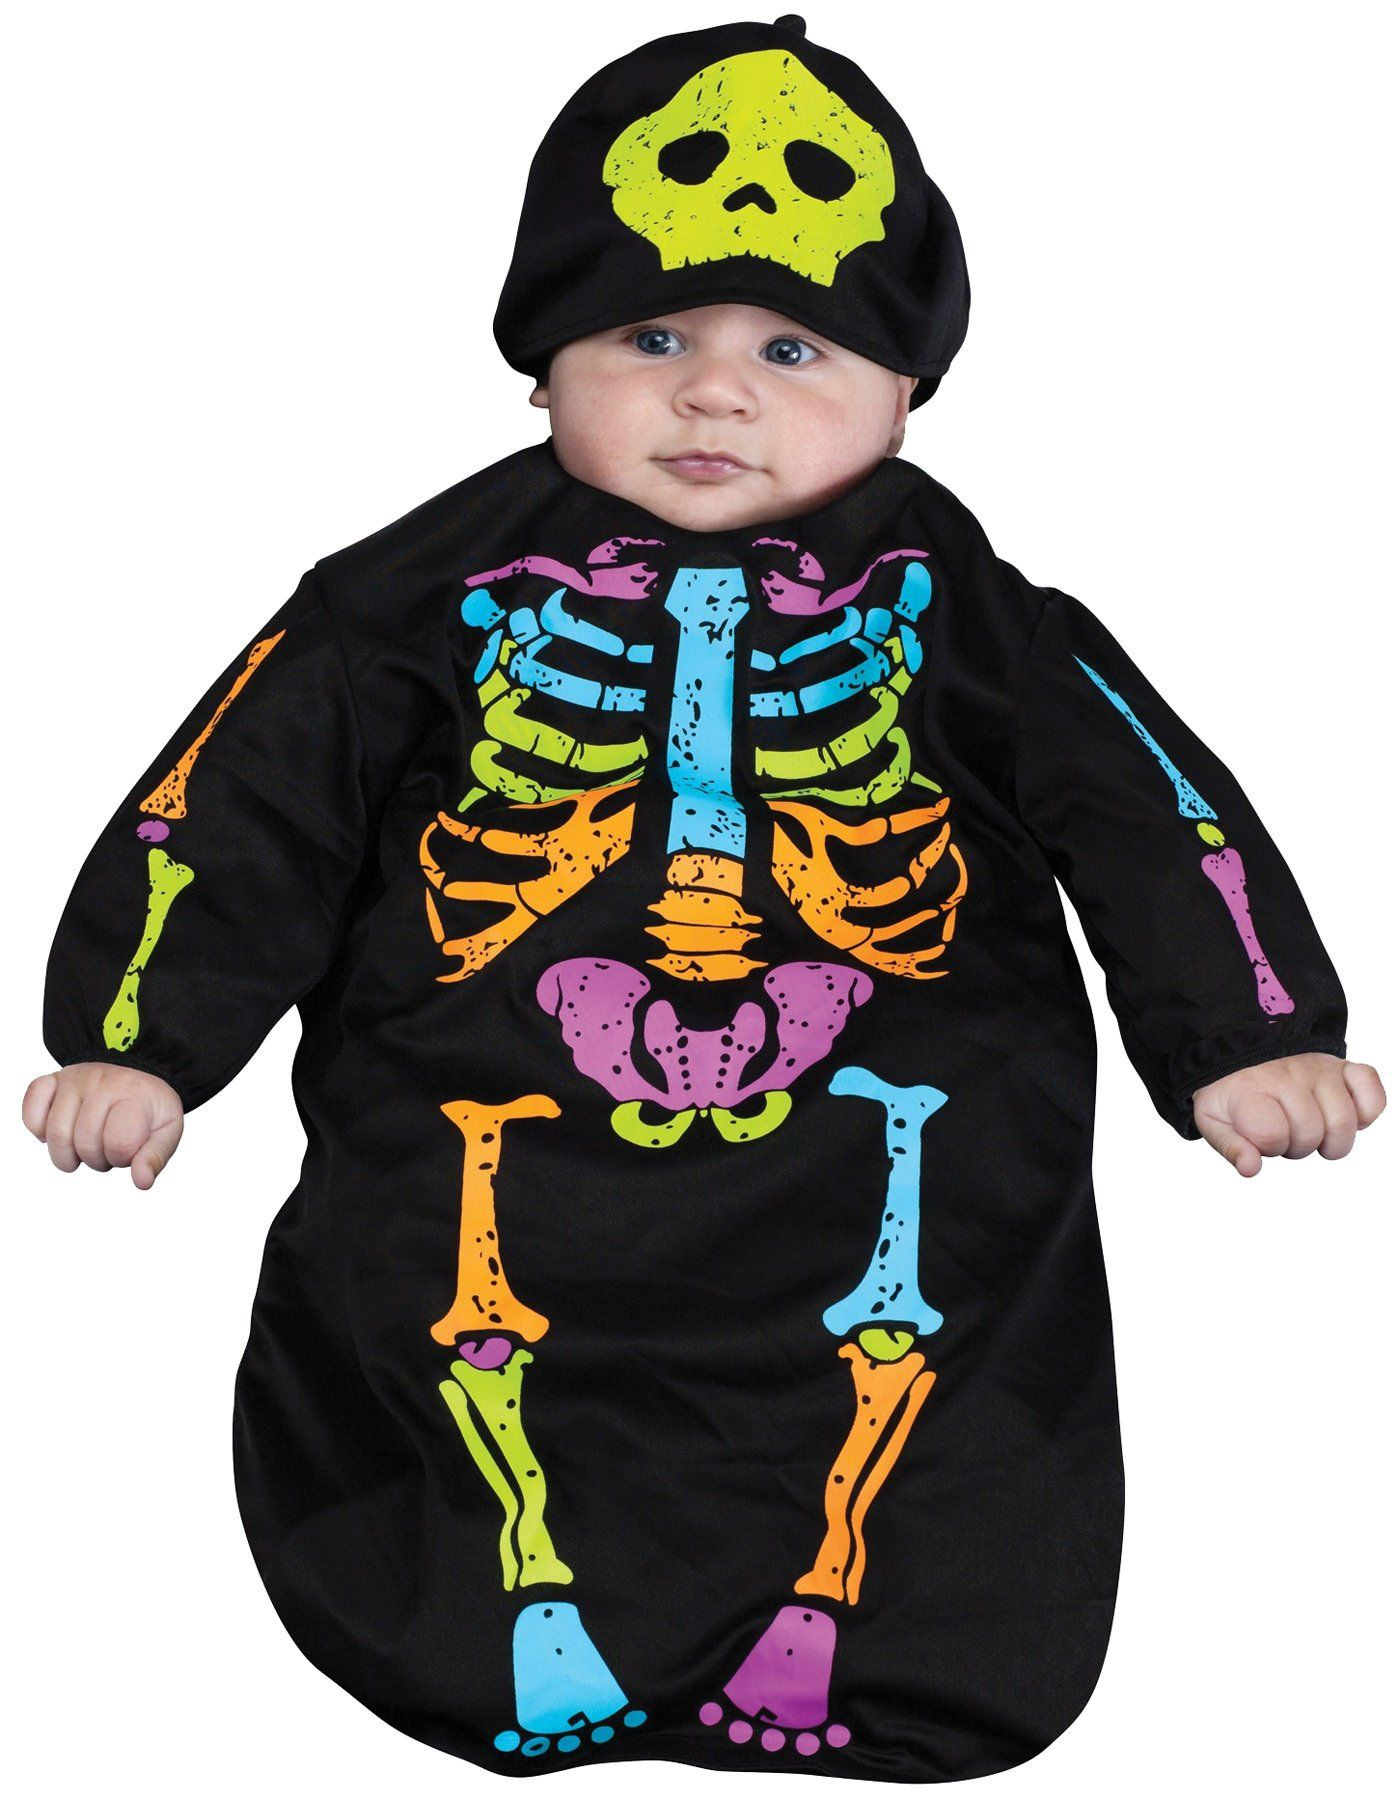 skelebaby baby bunting costume 0-9 months | products | pinterest